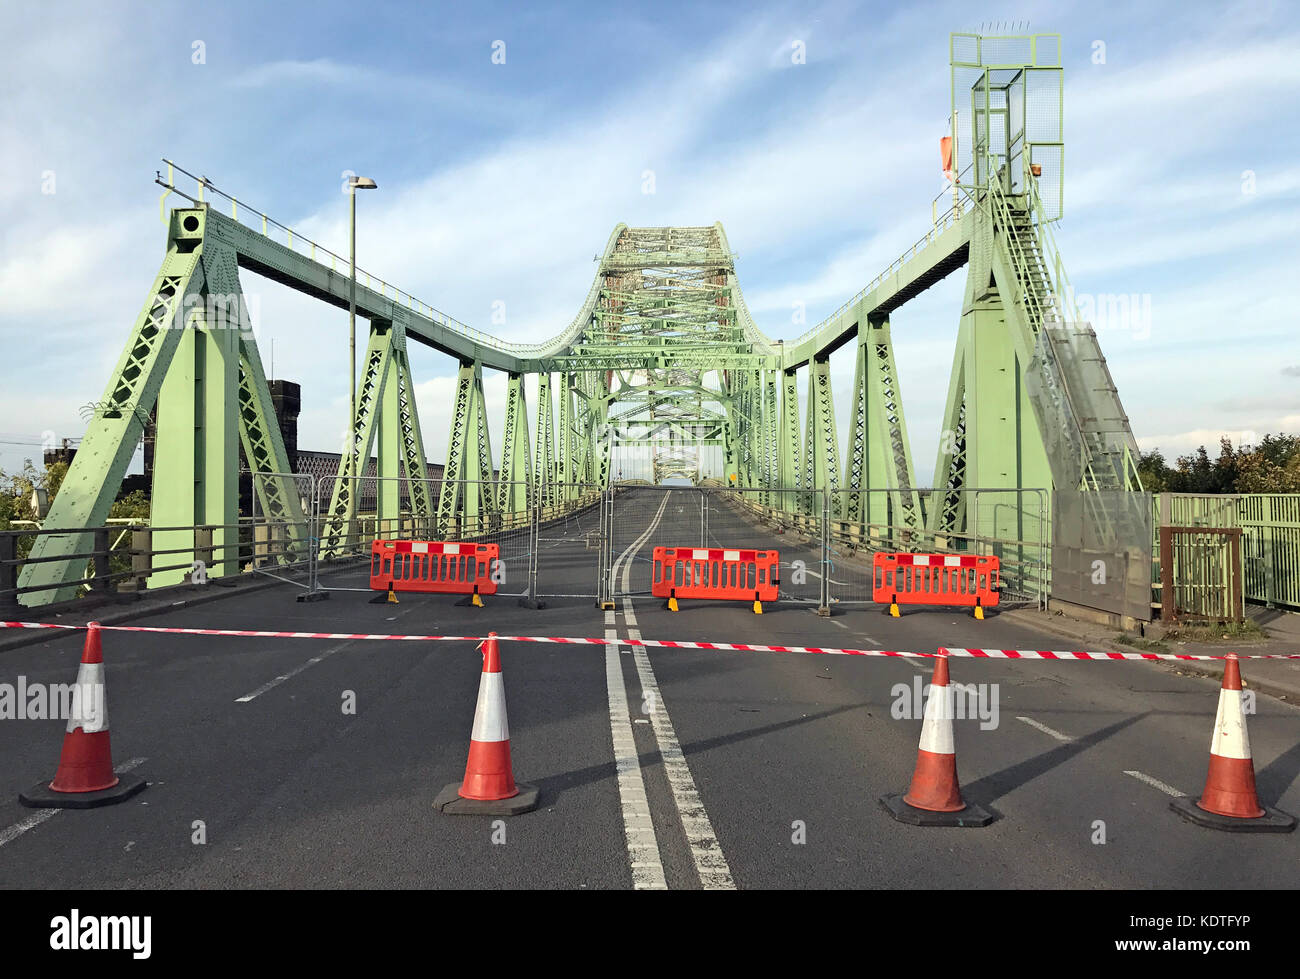 WestBound Silver Jubilee Bridge, 'Runcorn-Widnes Bridge' or Runcorn Bridge - Stock Image